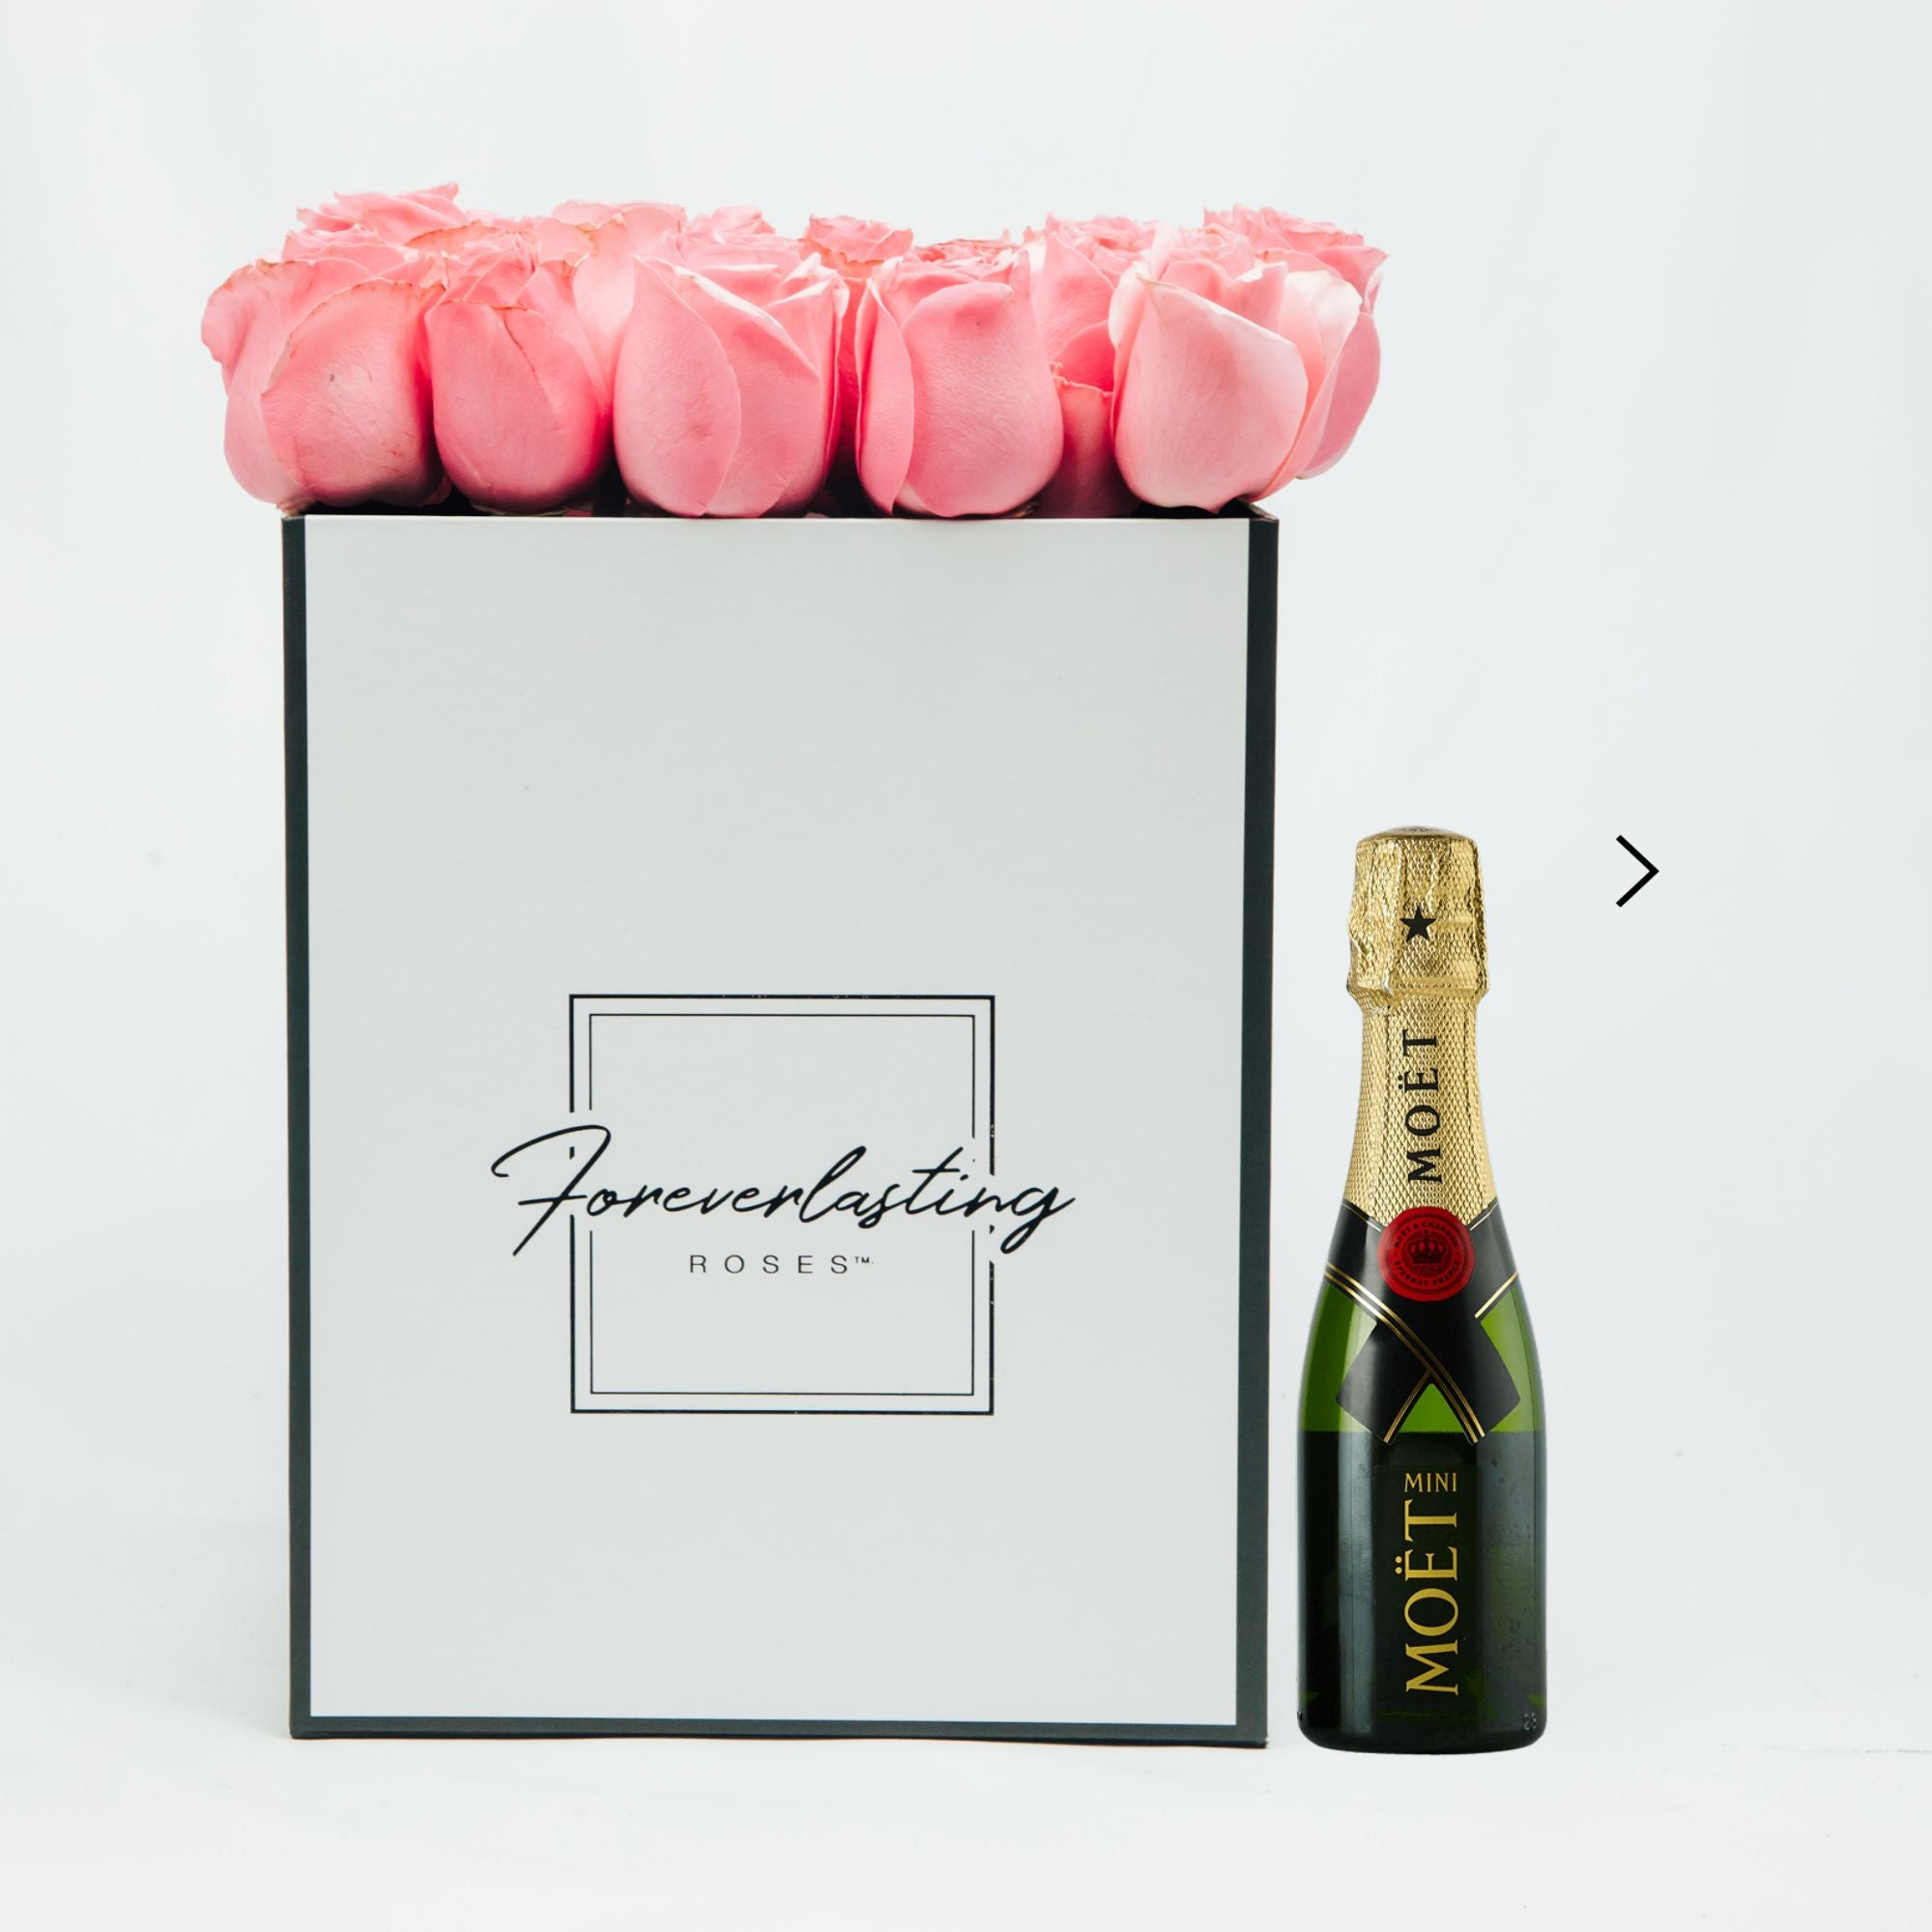 """Love Story"" Box (Pink) - red roses, roses that last 1 yr, roses that last a yr, roses that last one yr, roses that last a year, roses that last 1 year, roses that last one year, red roses, pink roses, white roses, luxury roses, luxury gift, luxury rose box, eternity roses, forever lasting roses"